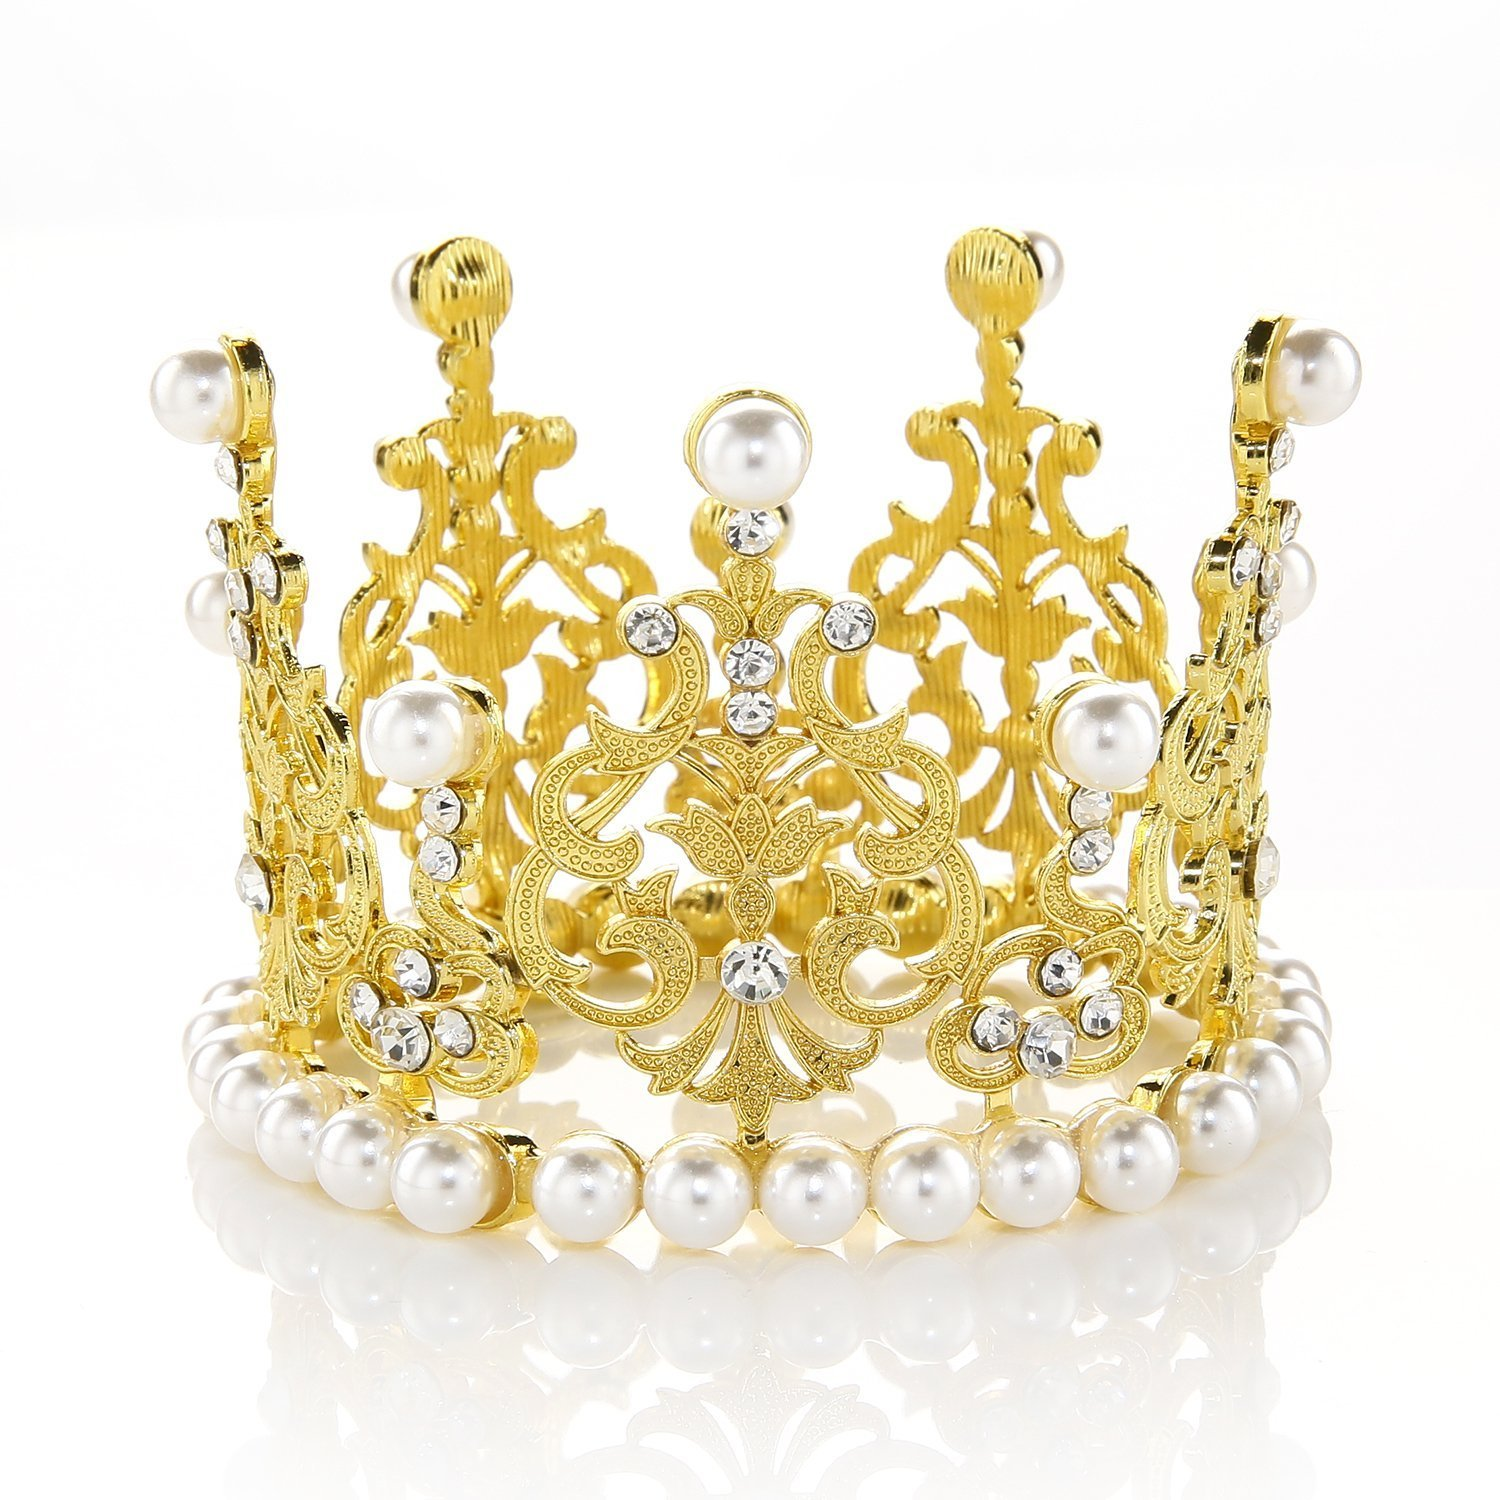 Amazon.com: JANOU Crown Tiara Cake Topper Crystal Pearl Children ...